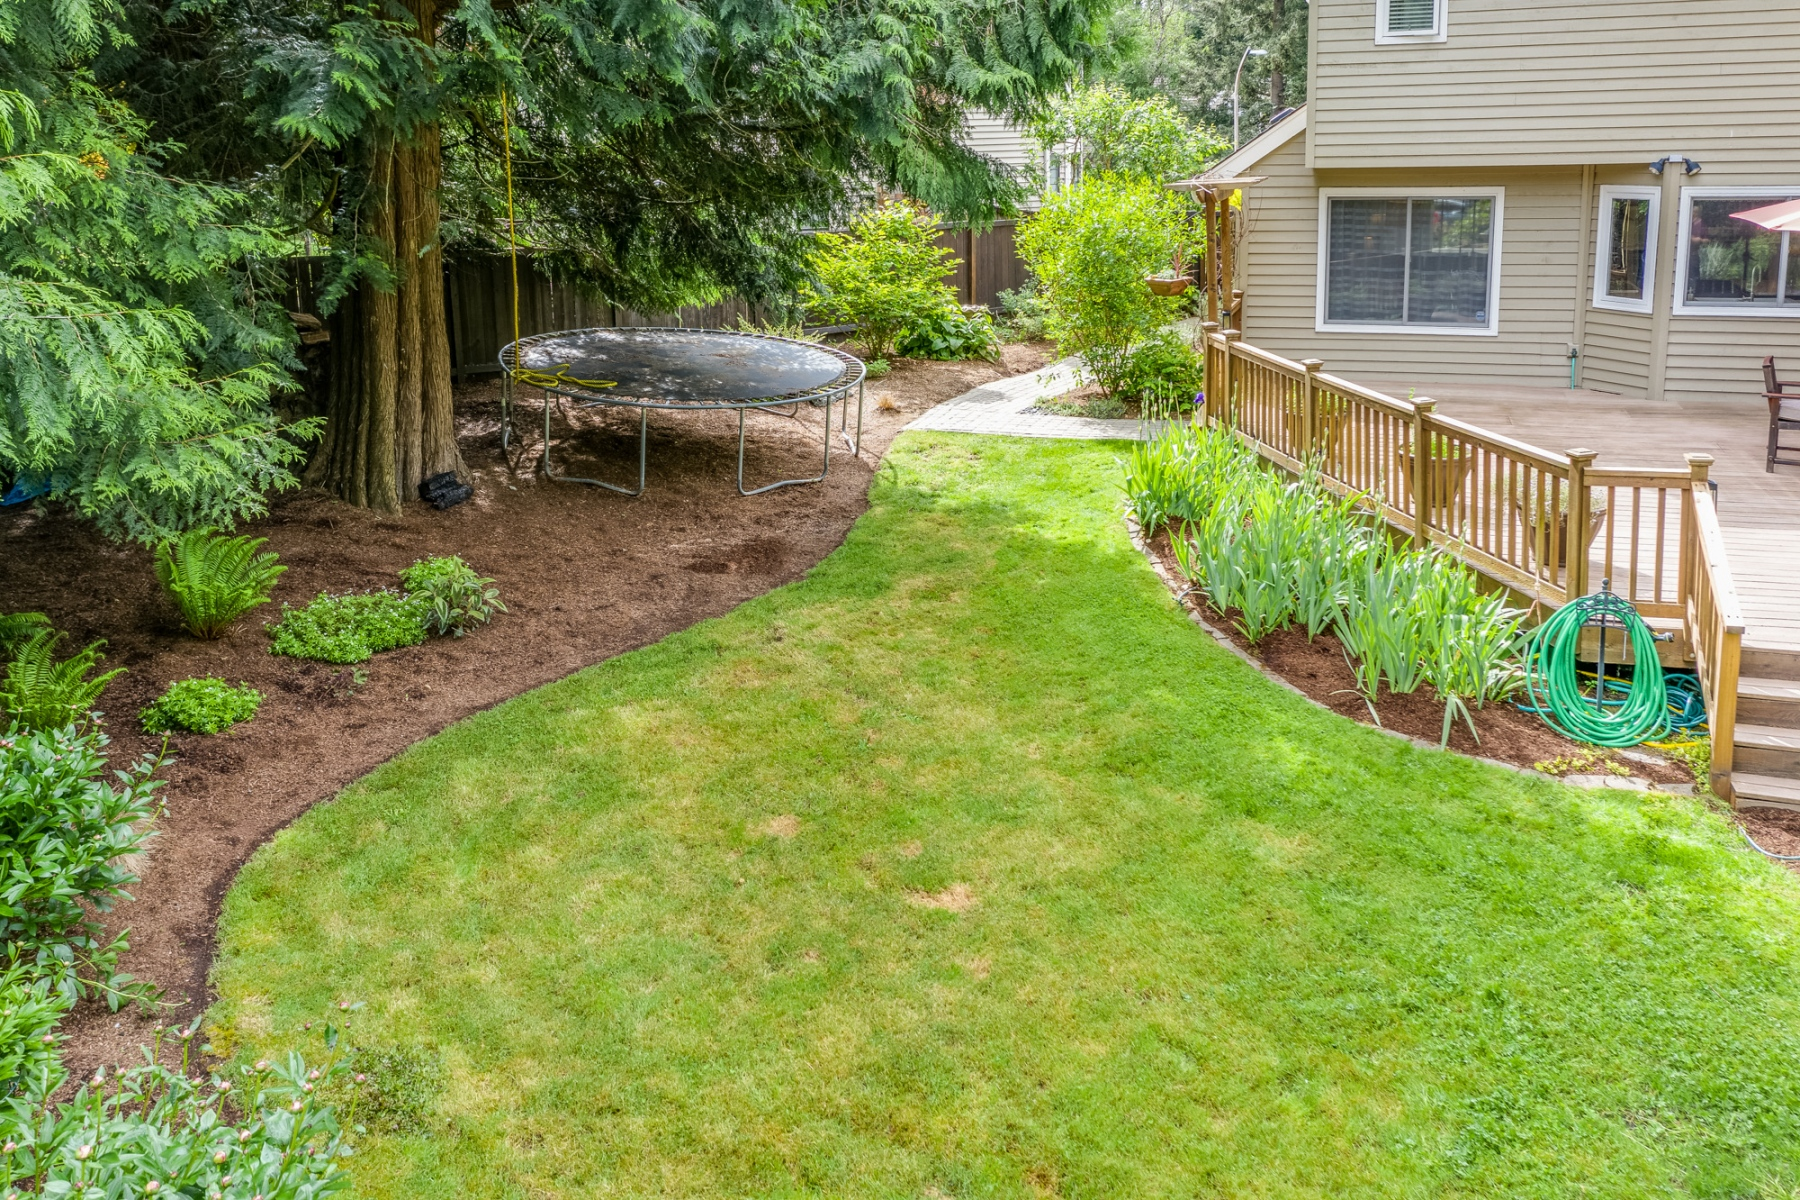 14153-176th-Ave-NE-Redmond-38